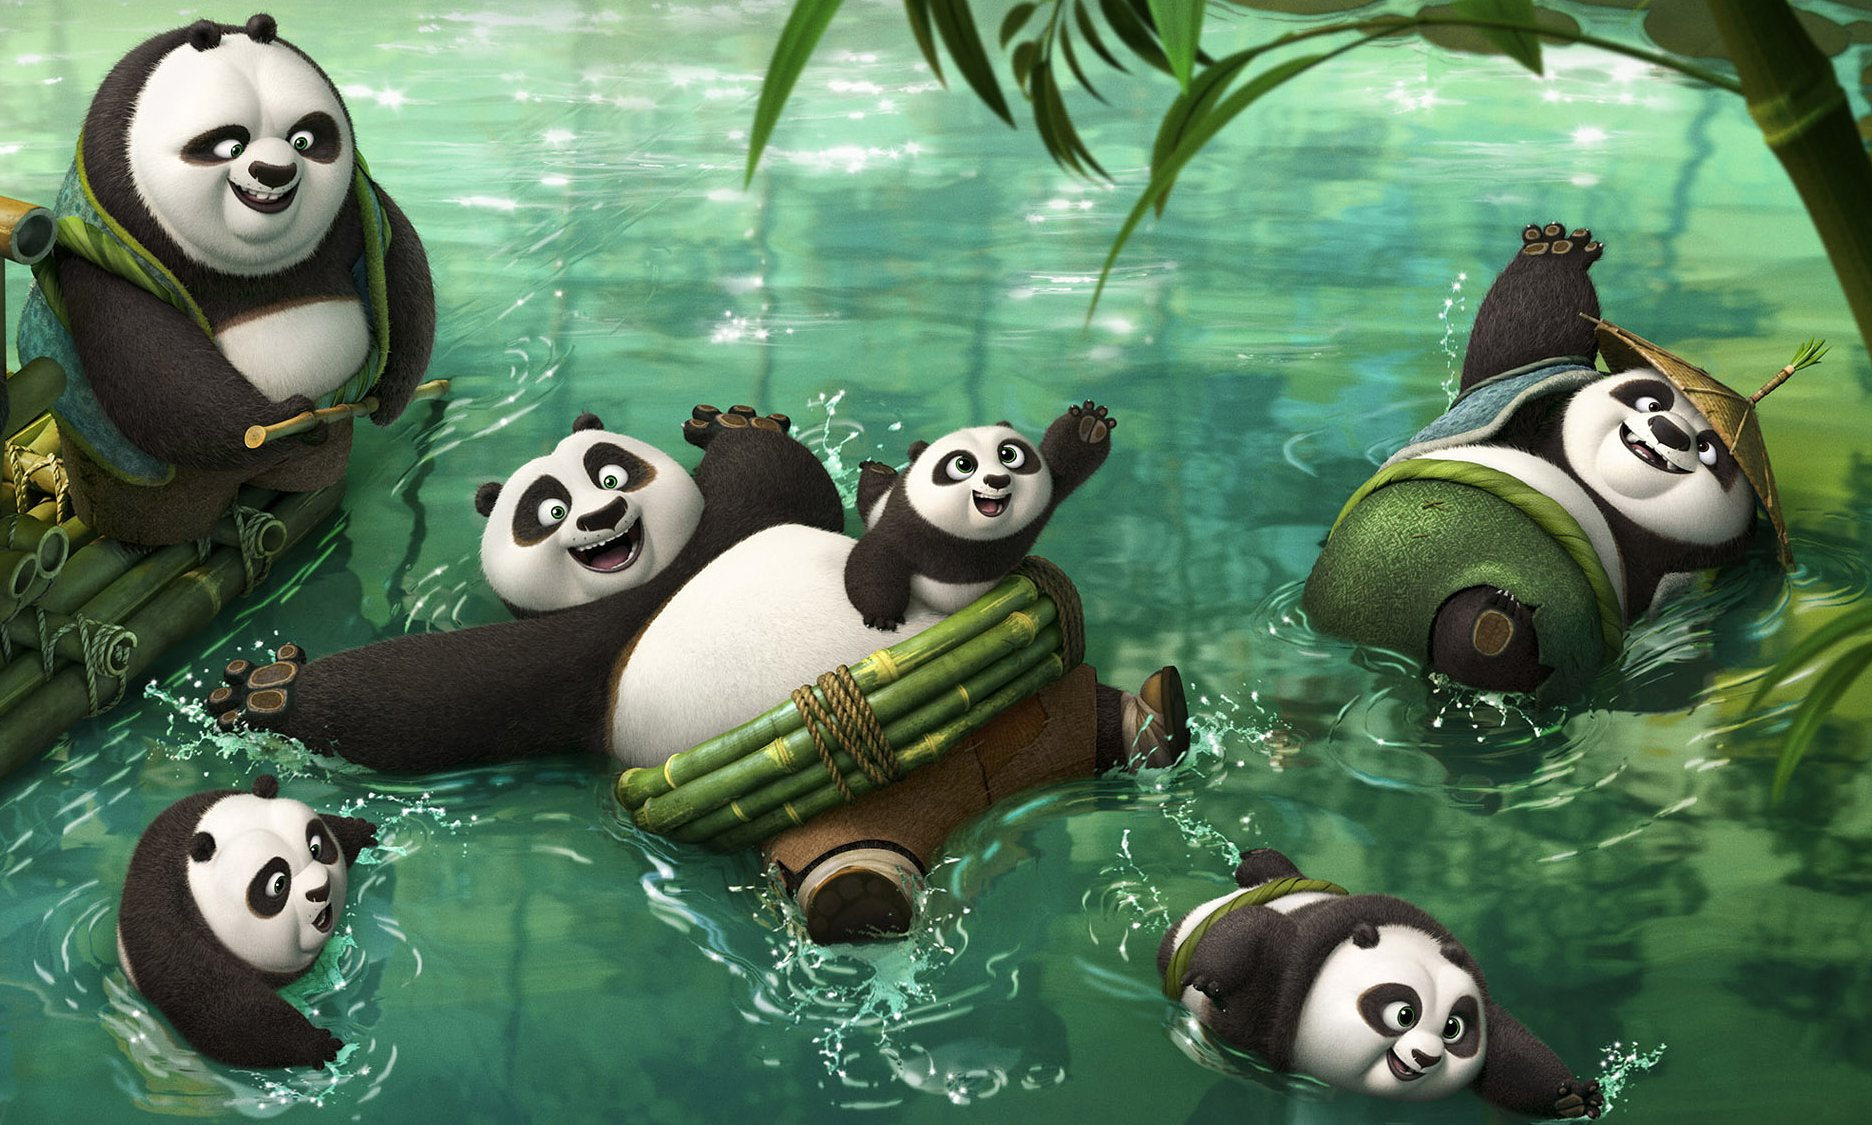 Po (Jack Black) is back for another Kung Fu adventure in Kung Fu Panda 3.